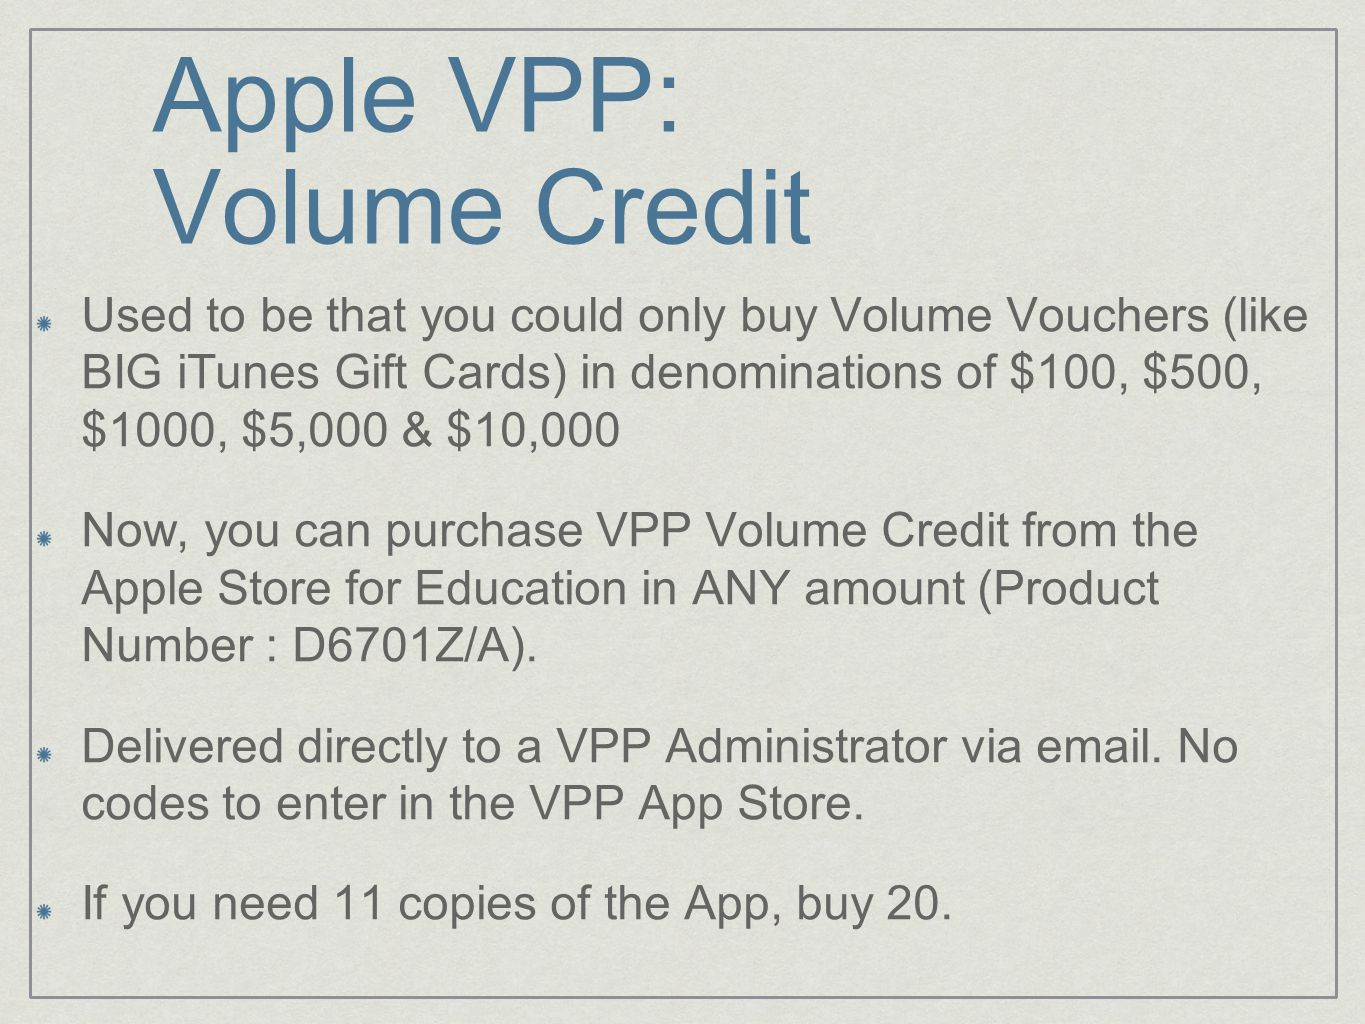 Apple VPP: Volume Credit Used to be that you could only buy Volume Vouchers (like BIG iTunes Gift Cards) in denominations of $100, $500, $1000, $5,000 & $10,000 Now, you can purchase VPP Volume Credit from the Apple Store for Education in ANY amount (Product Number : D6701Z/A).